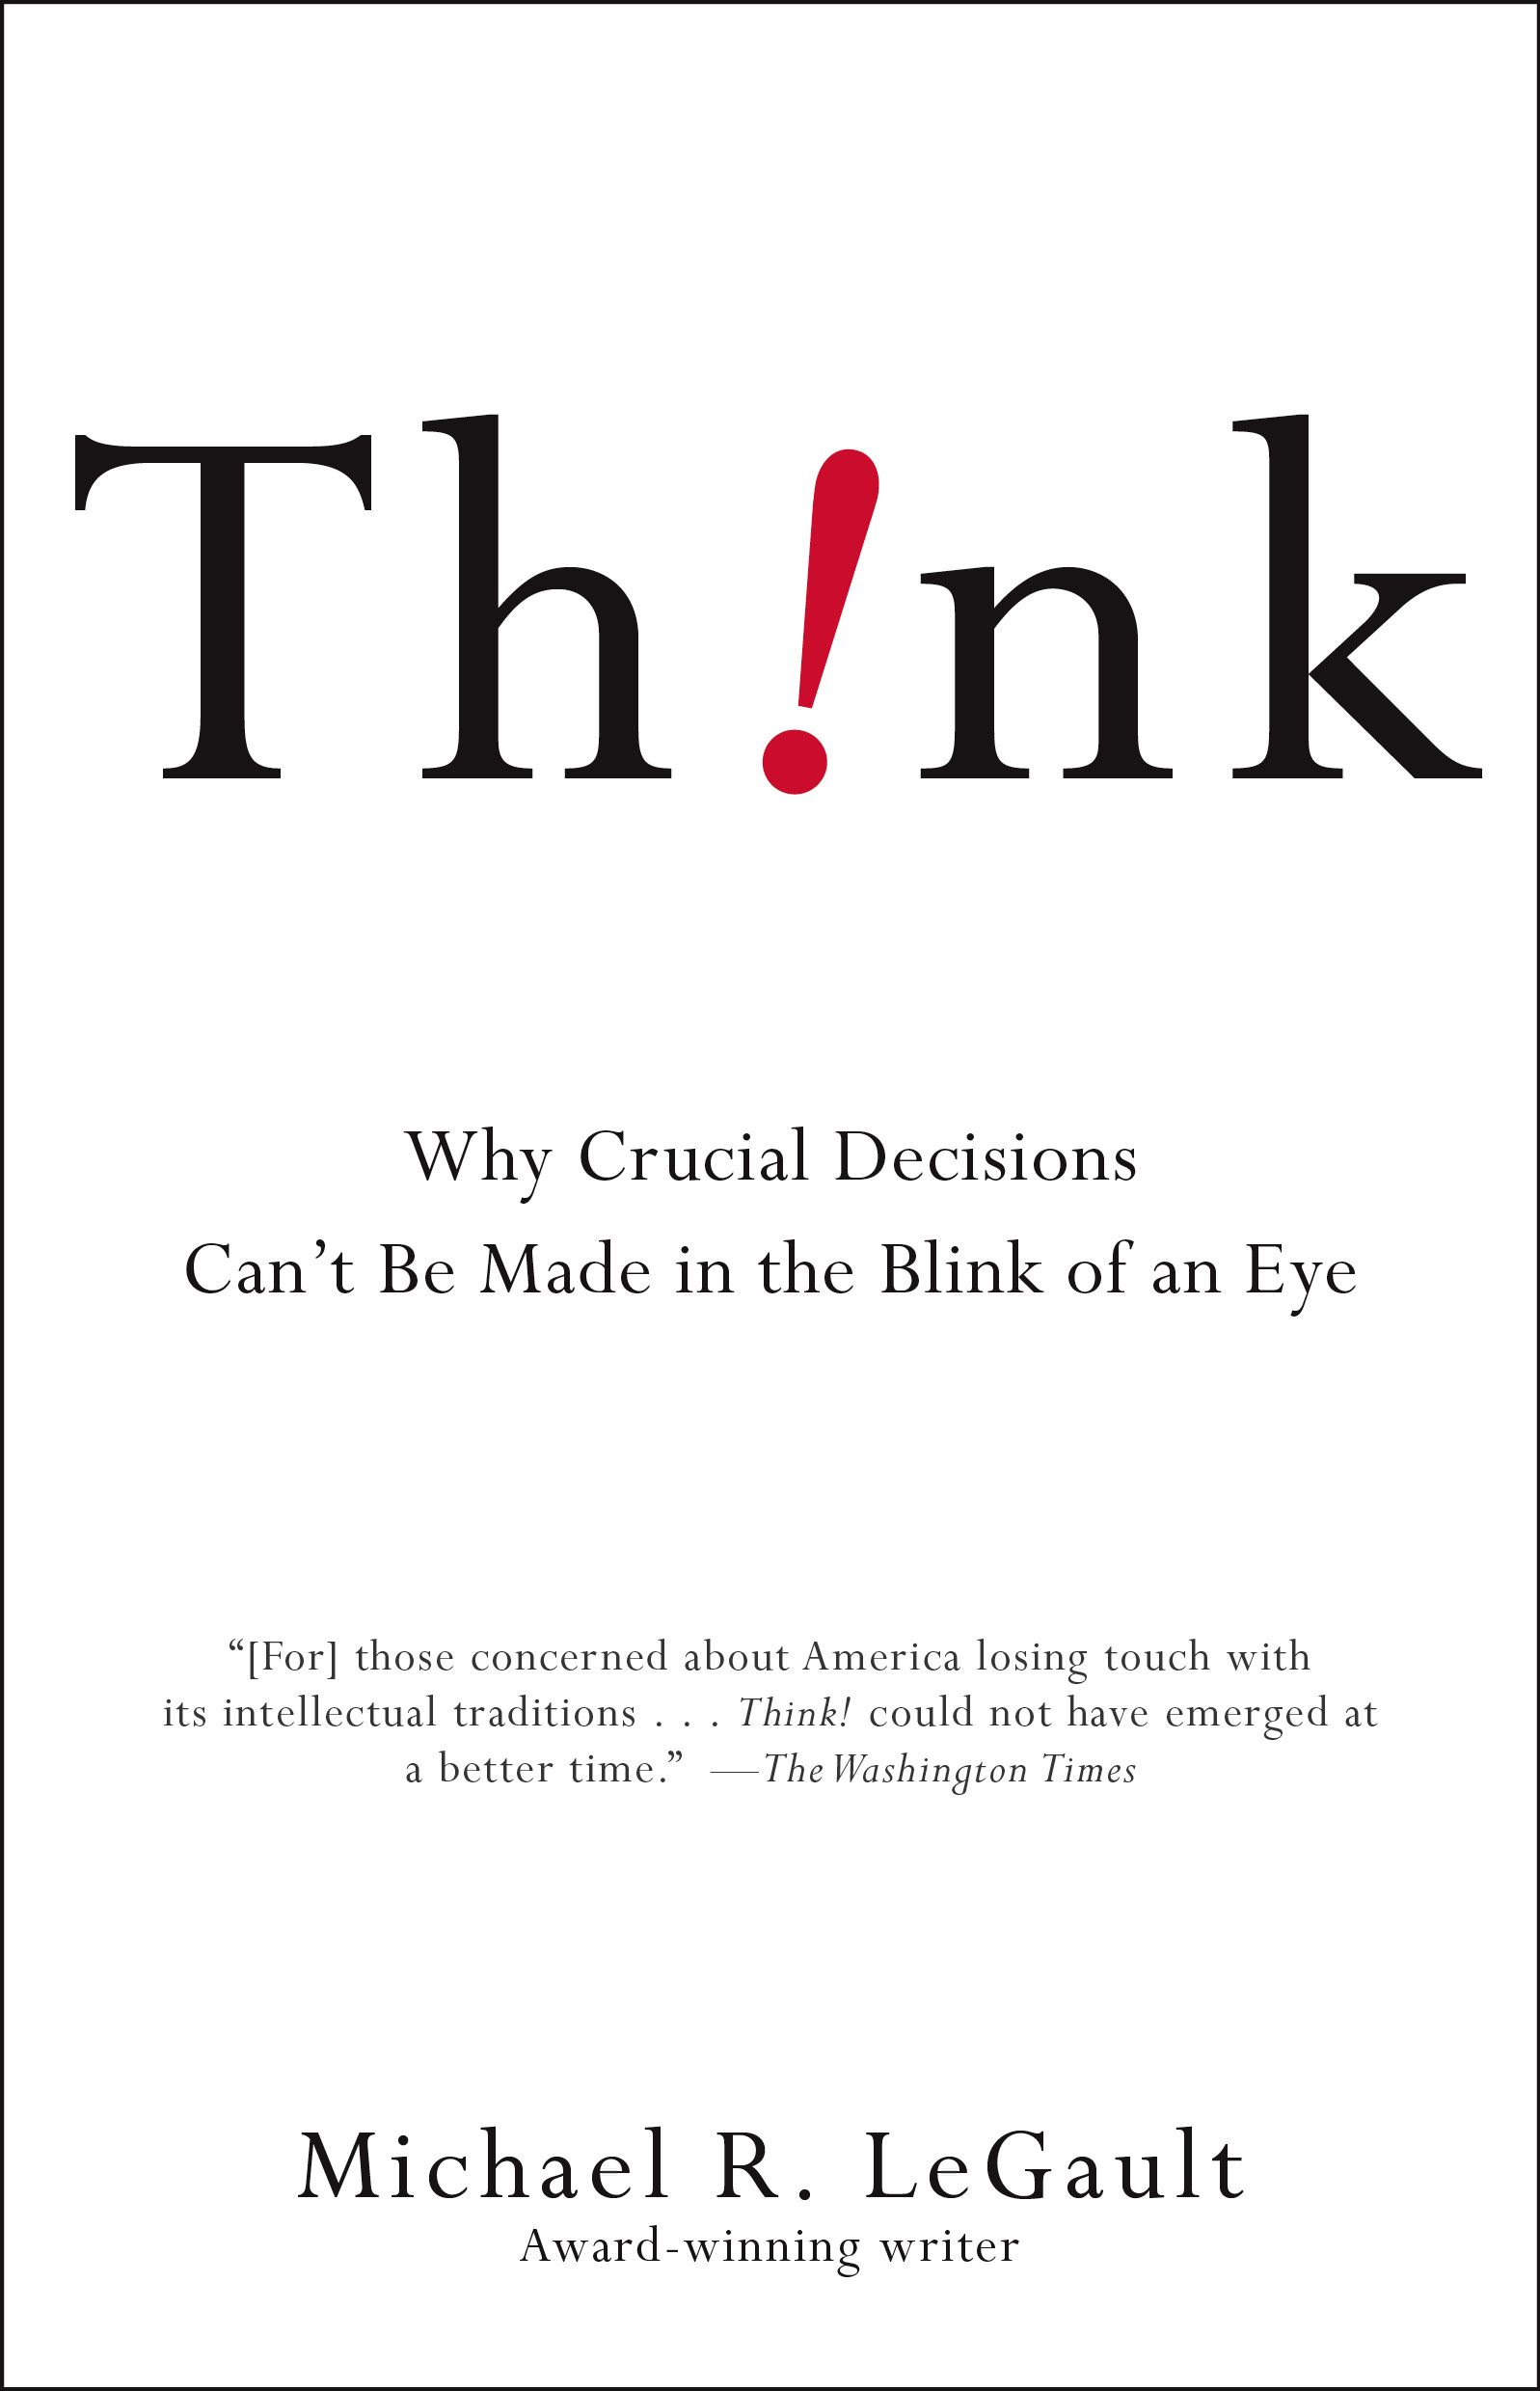 Download Ebook Think! by Michael R. LeGault Pdf